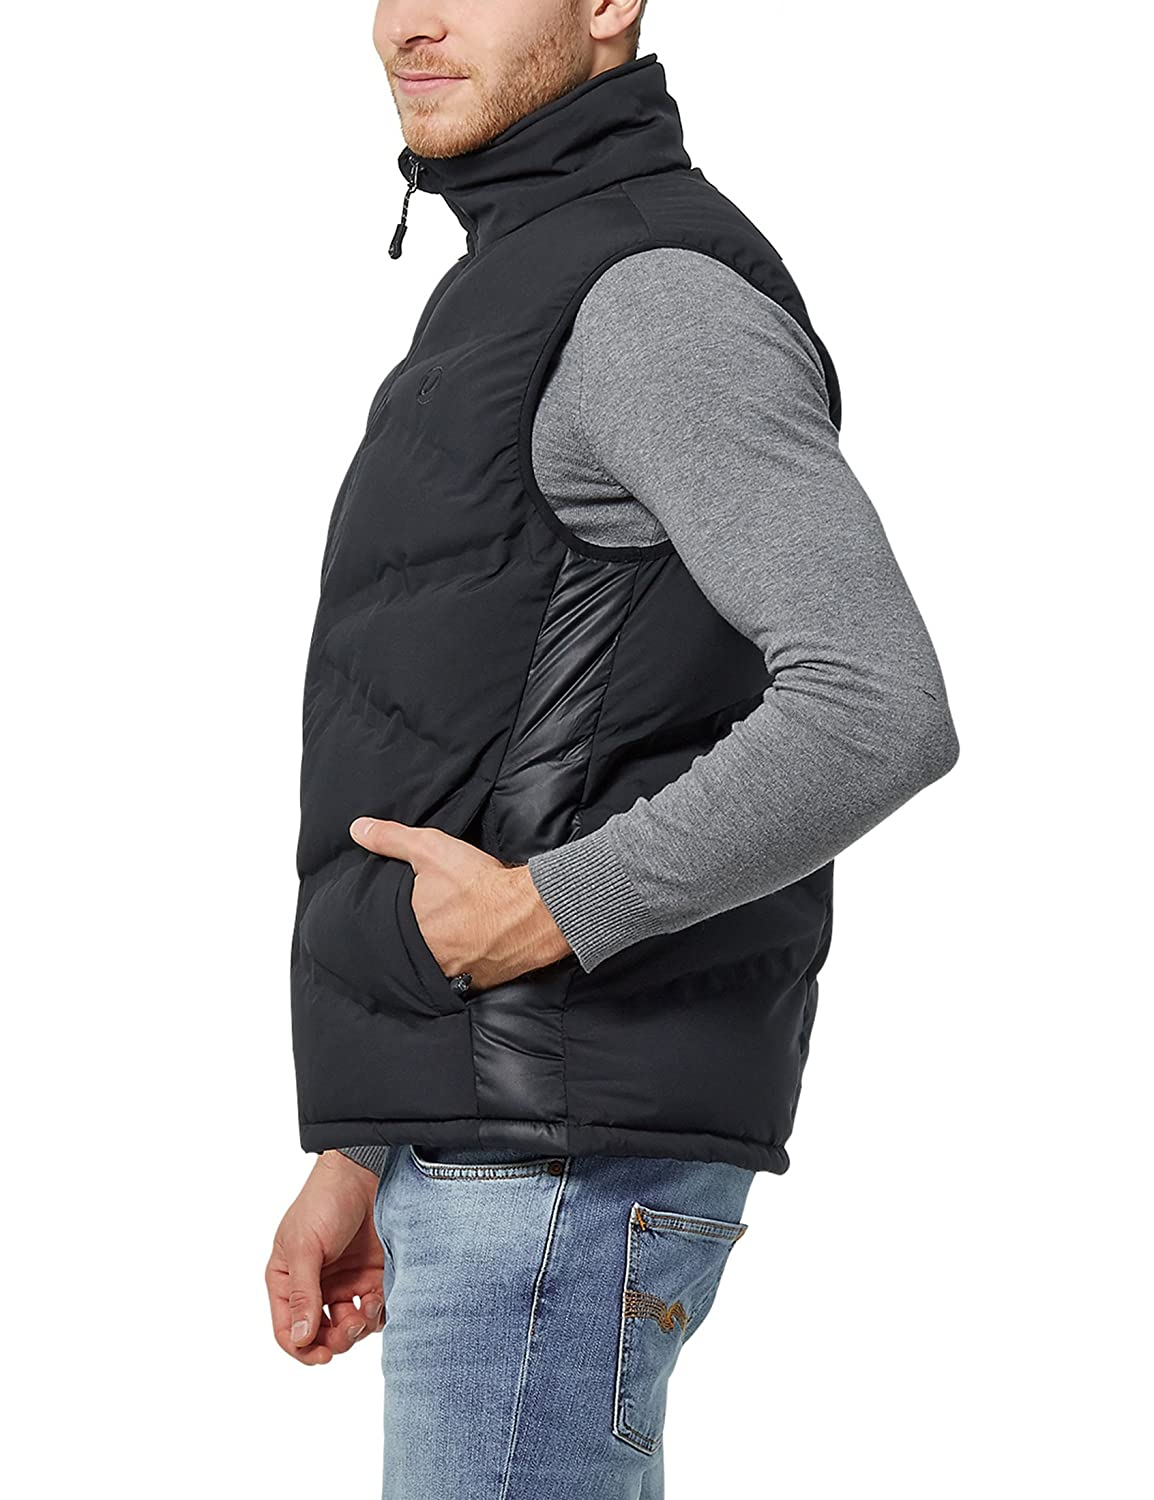 Amazon.com: Ultega Mens Functional Quilted Phil Body Warmer Vest with UF 3.000, Black, Large: Sports & Outdoors